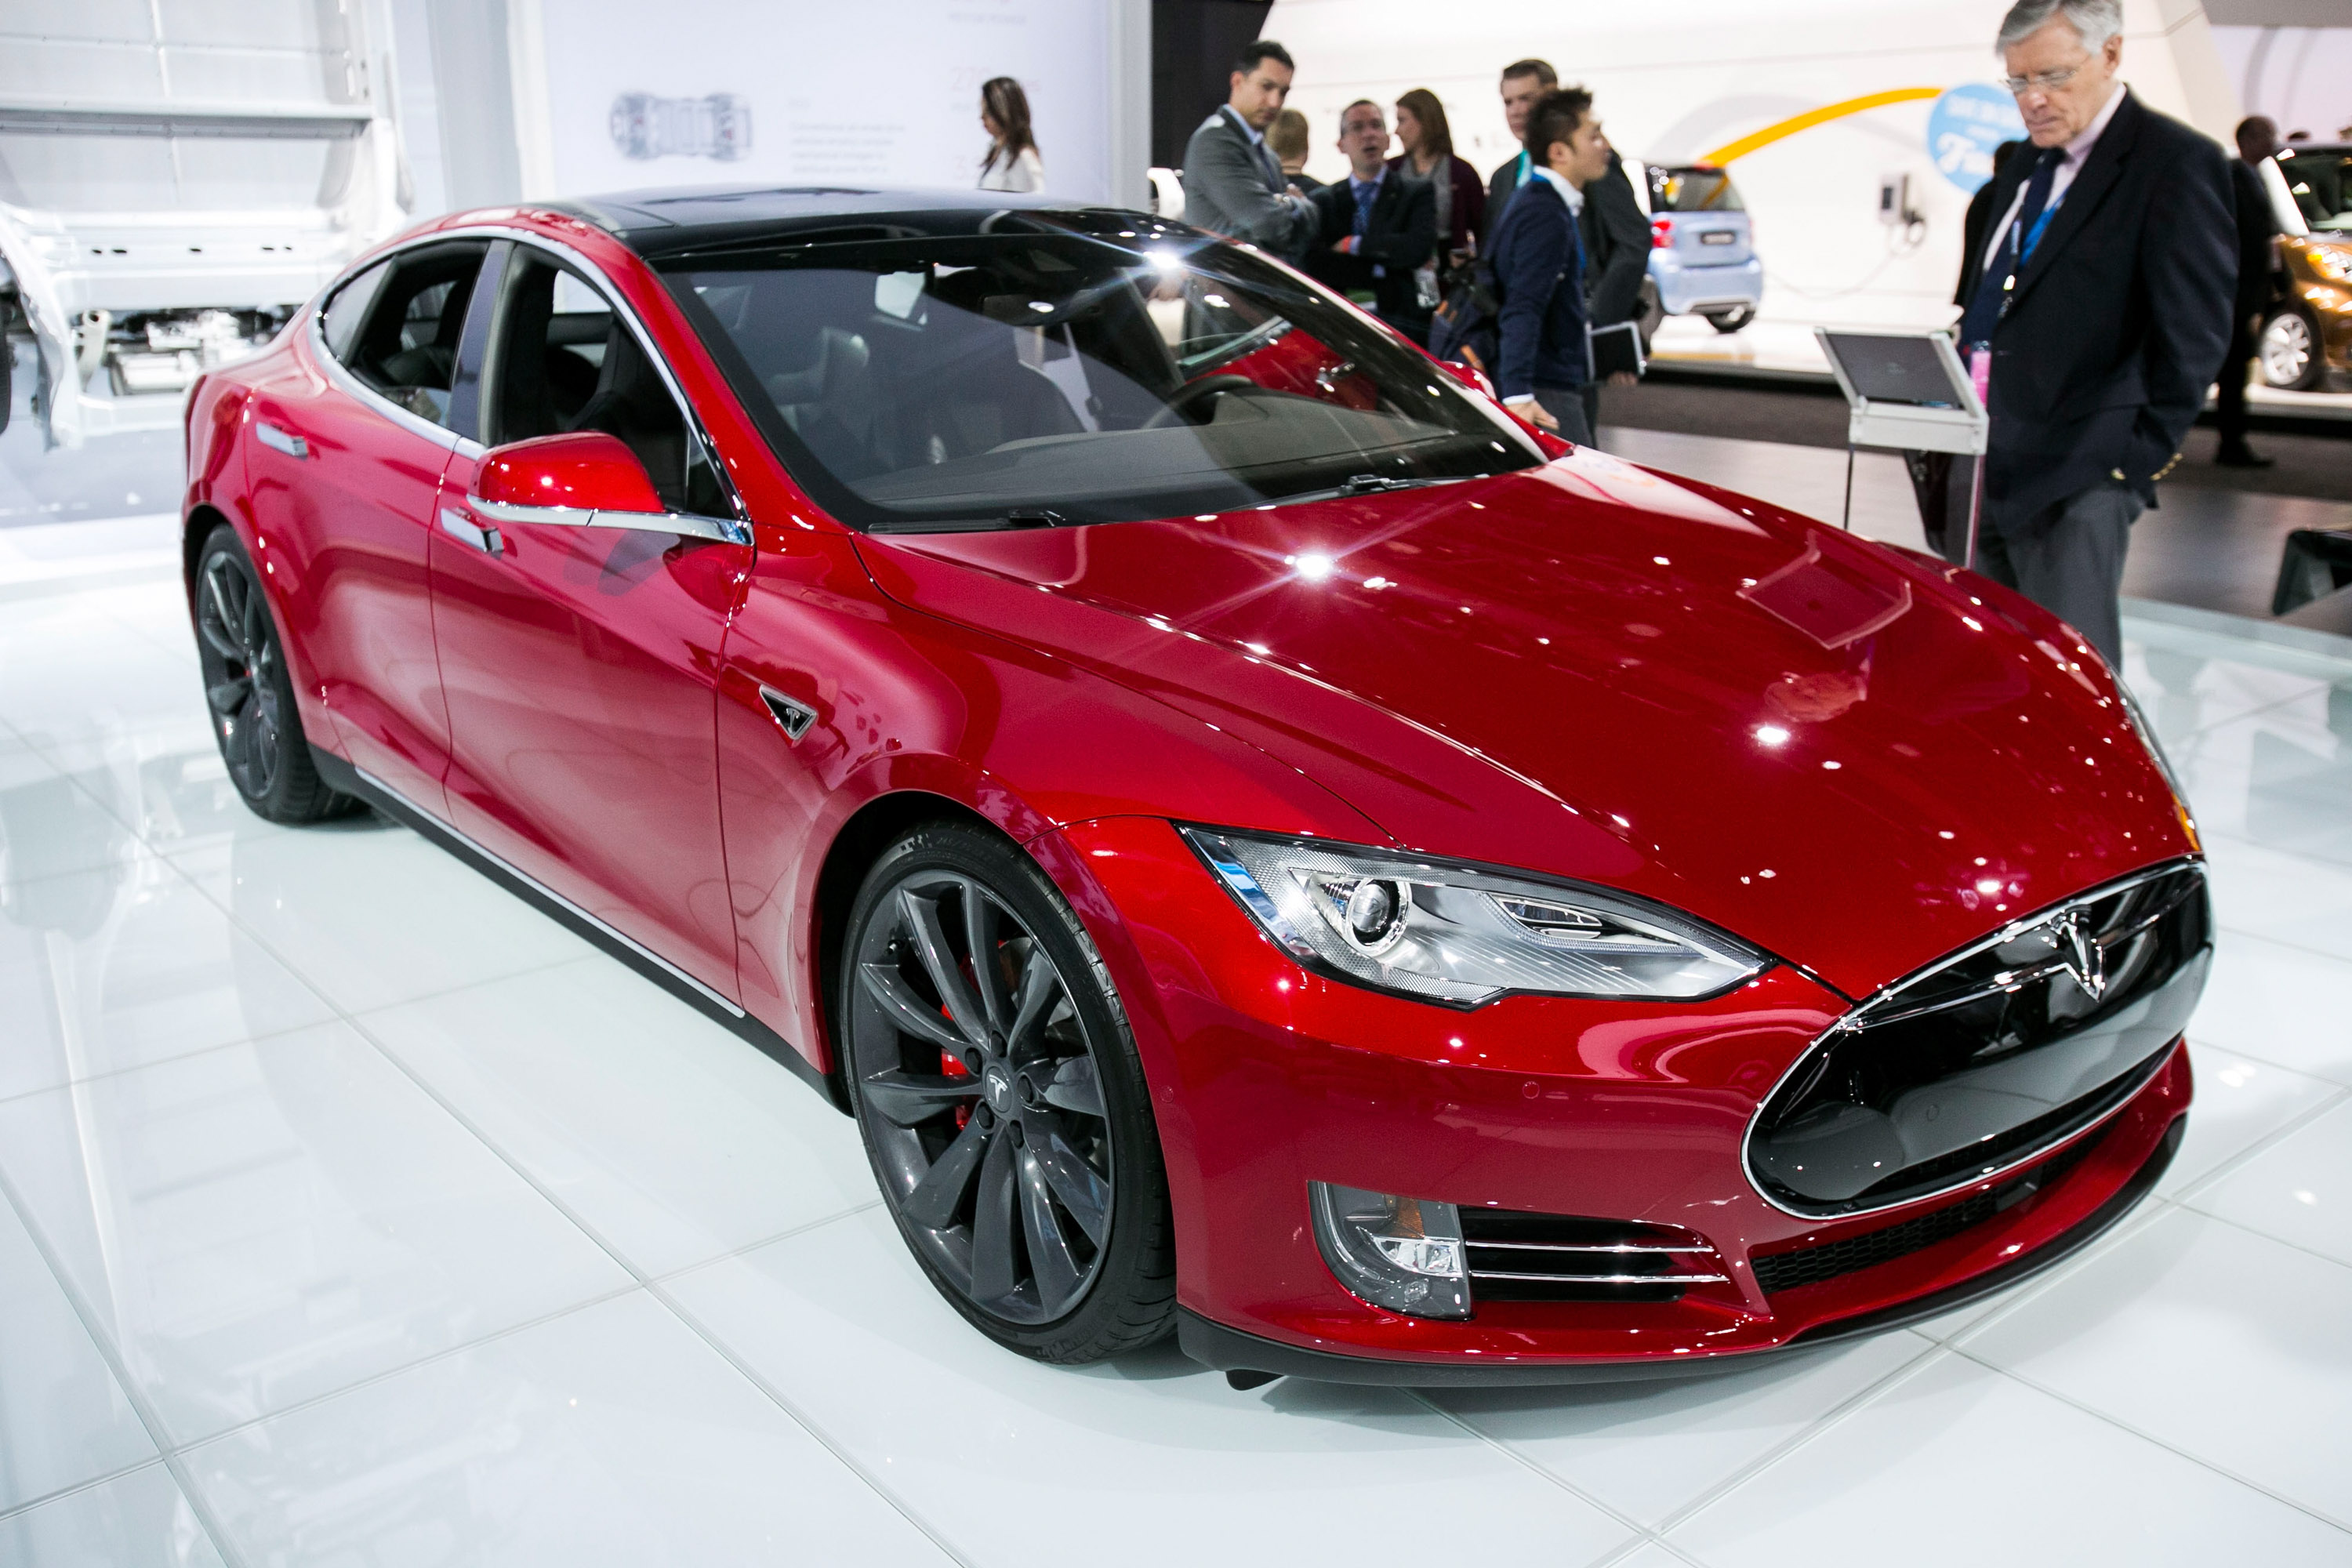 Tesla Model S P85D is revealed to the media at the 2015 North American International Auto Show at Cobo Center on January 12, 2015 in Detroit, Michigan.